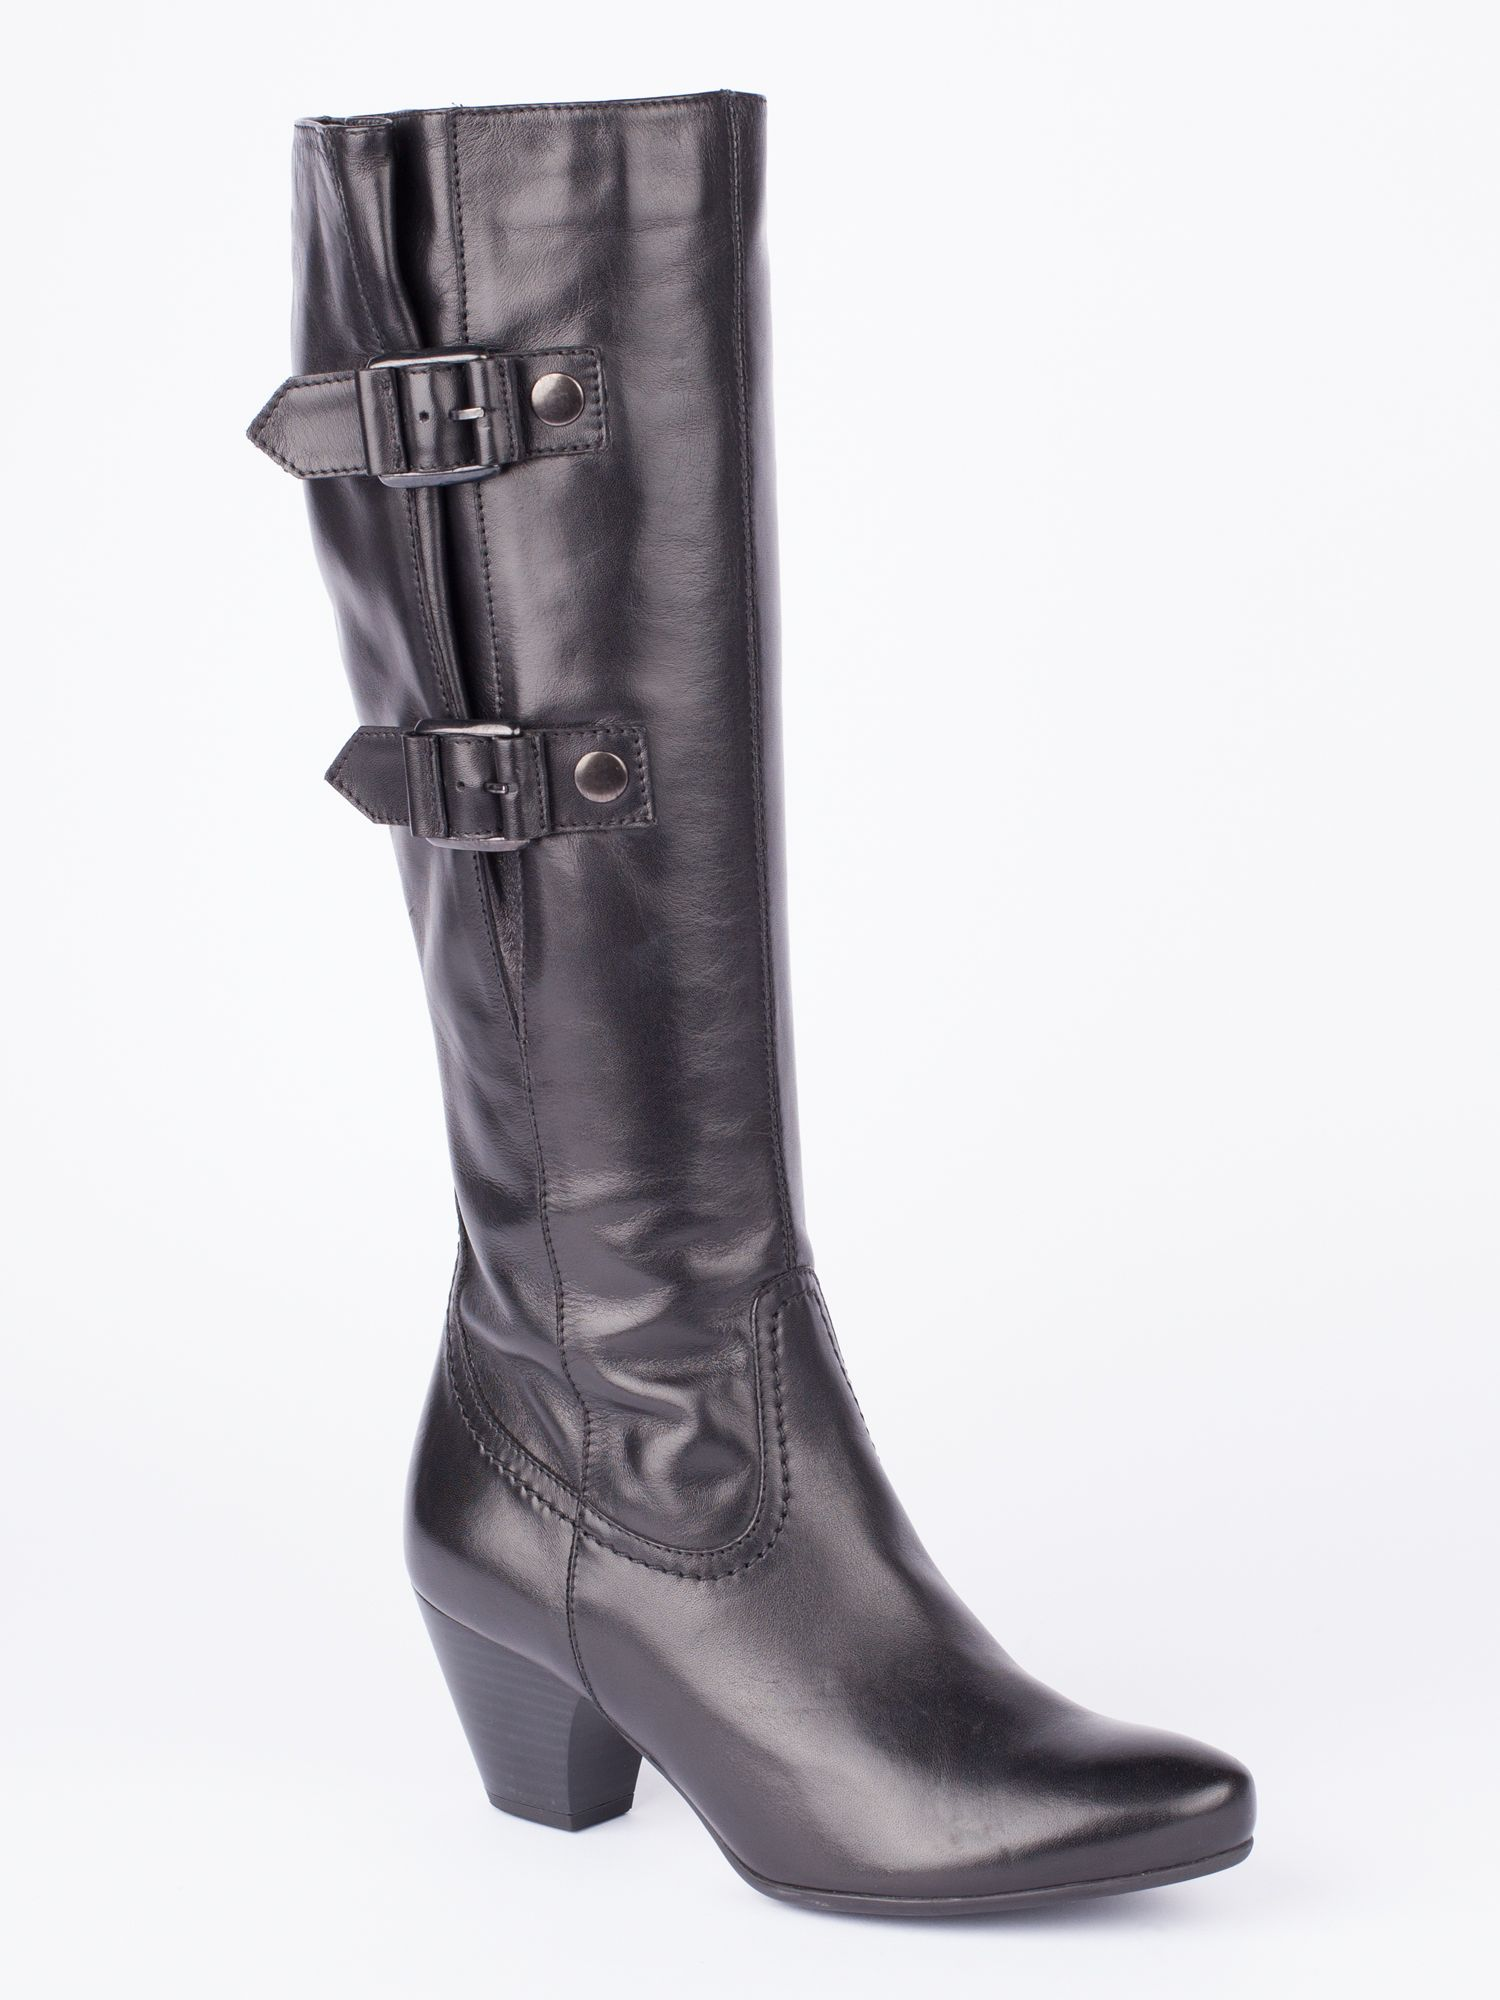 Ridley knee high boot